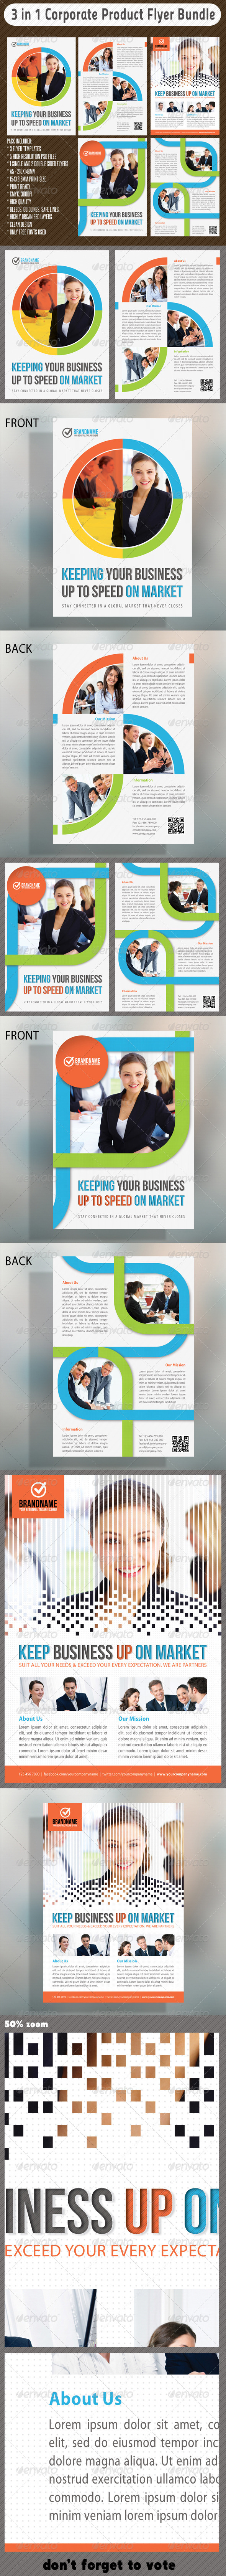 GraphicRiver 3 in 1 Corporate Flyers Bundle 03 6669011